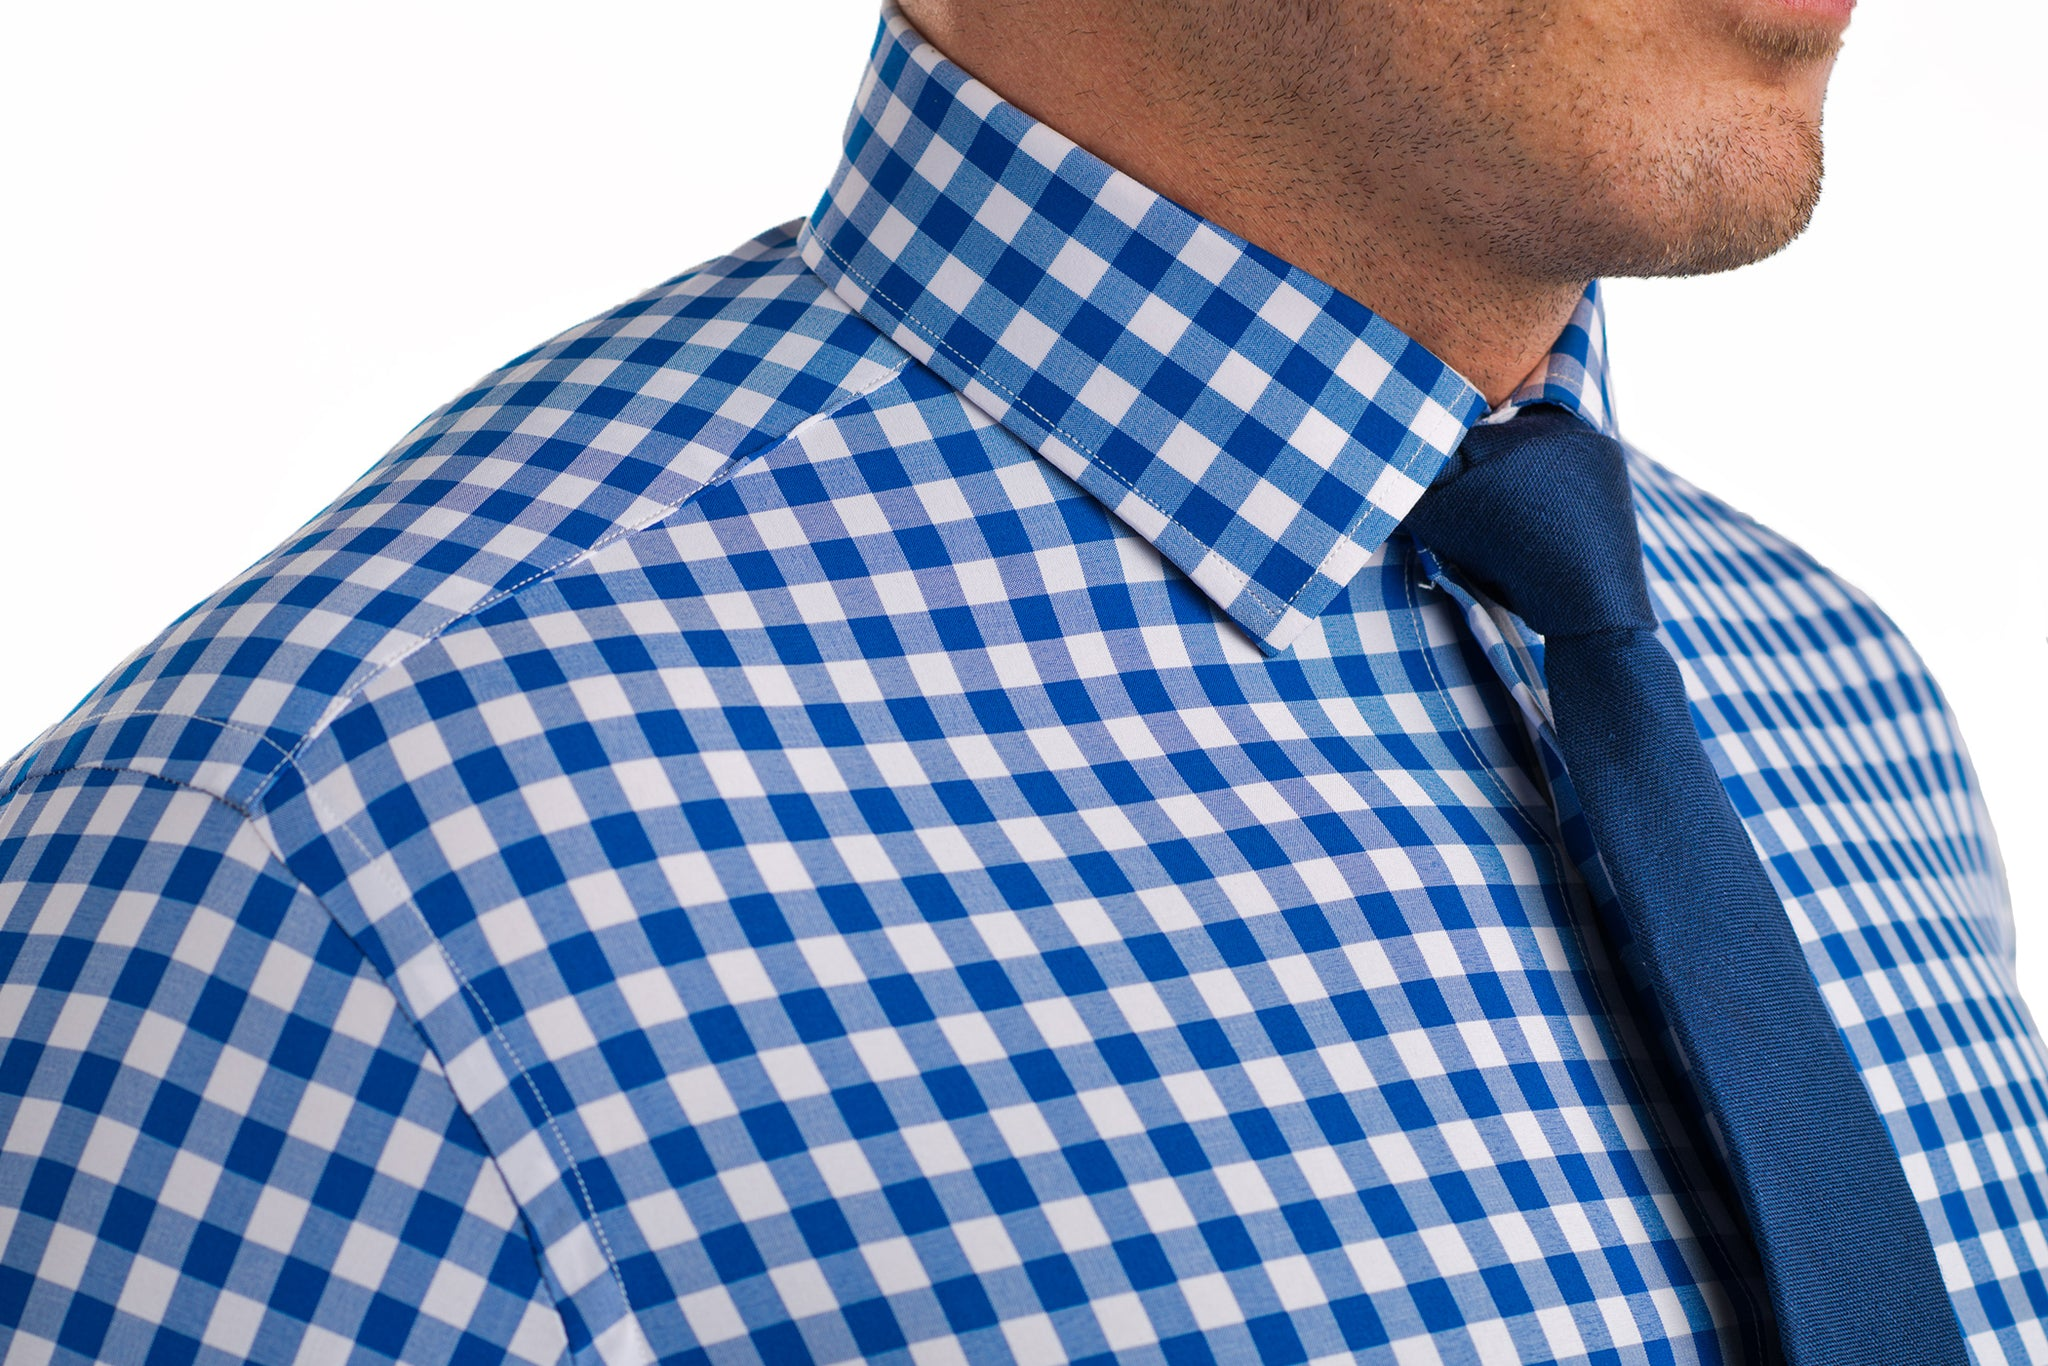 b1540ef48a2f1f Light Blue Plaid Shirt With Tie – EDGE Engineering and Consulting ...